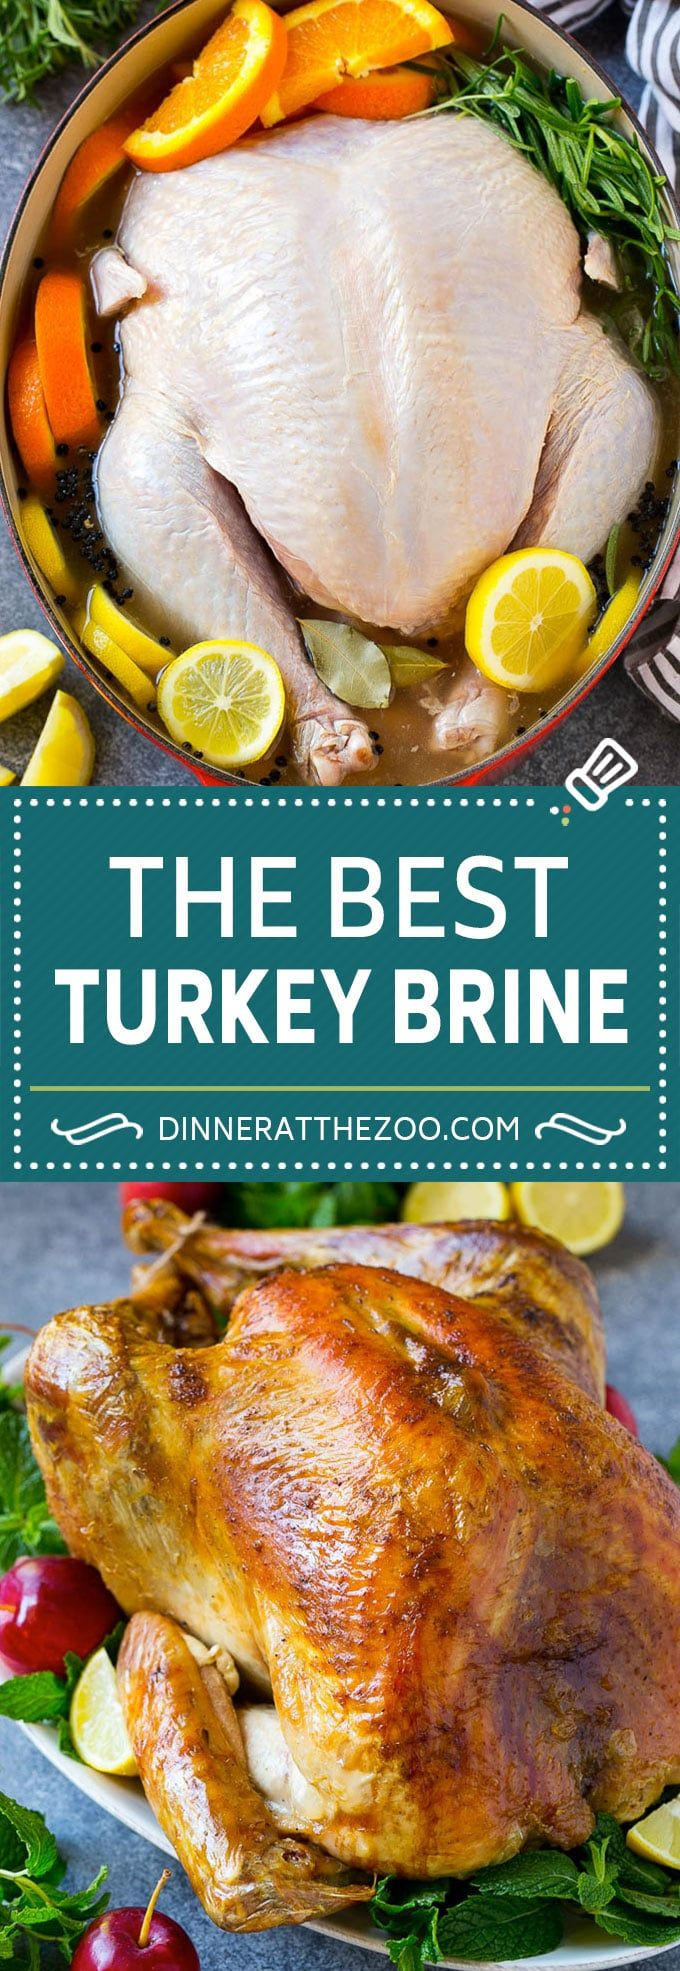 Turkey Brine Recipe - Dinner at the Zoo